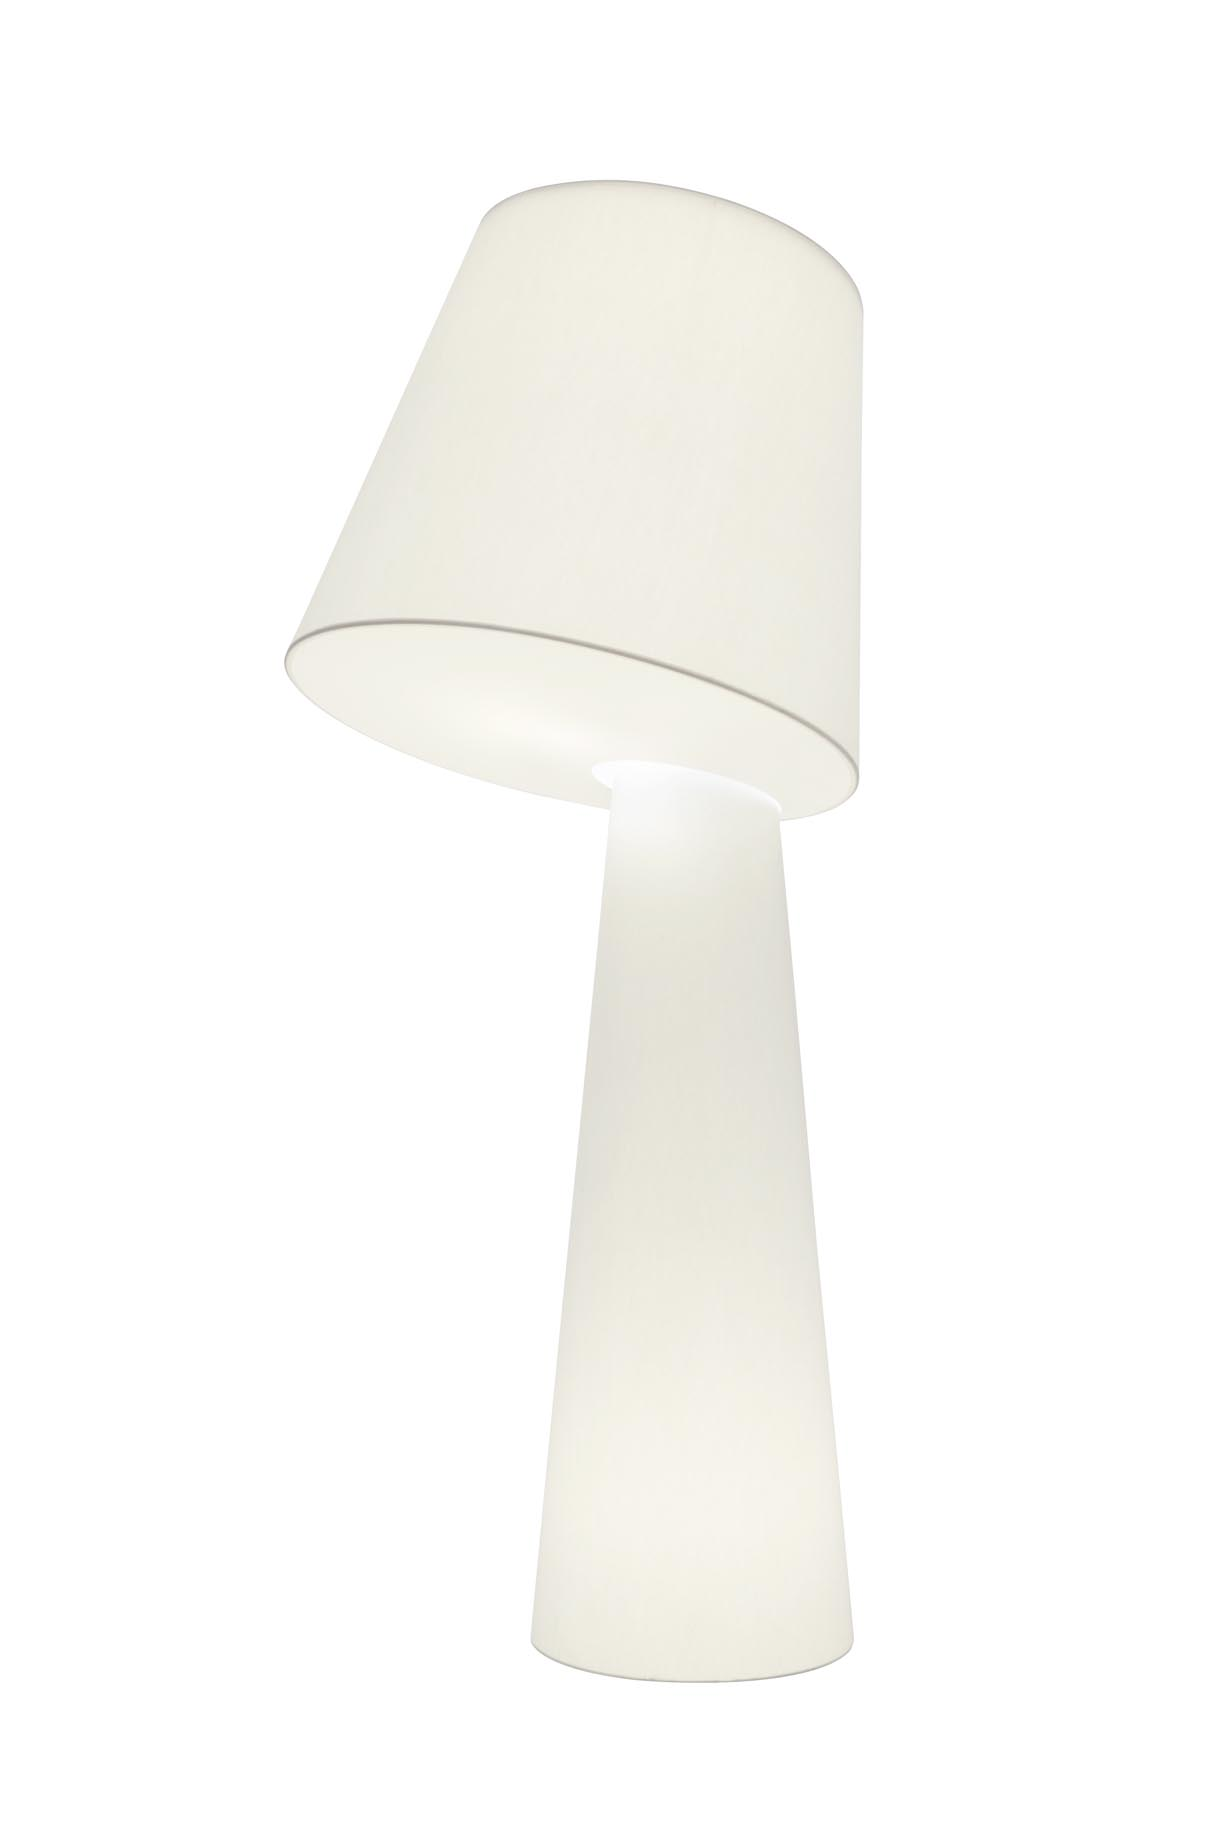 BIG BROTHER Floor Lamp by Oriol Llahona for ALMA LIGHT